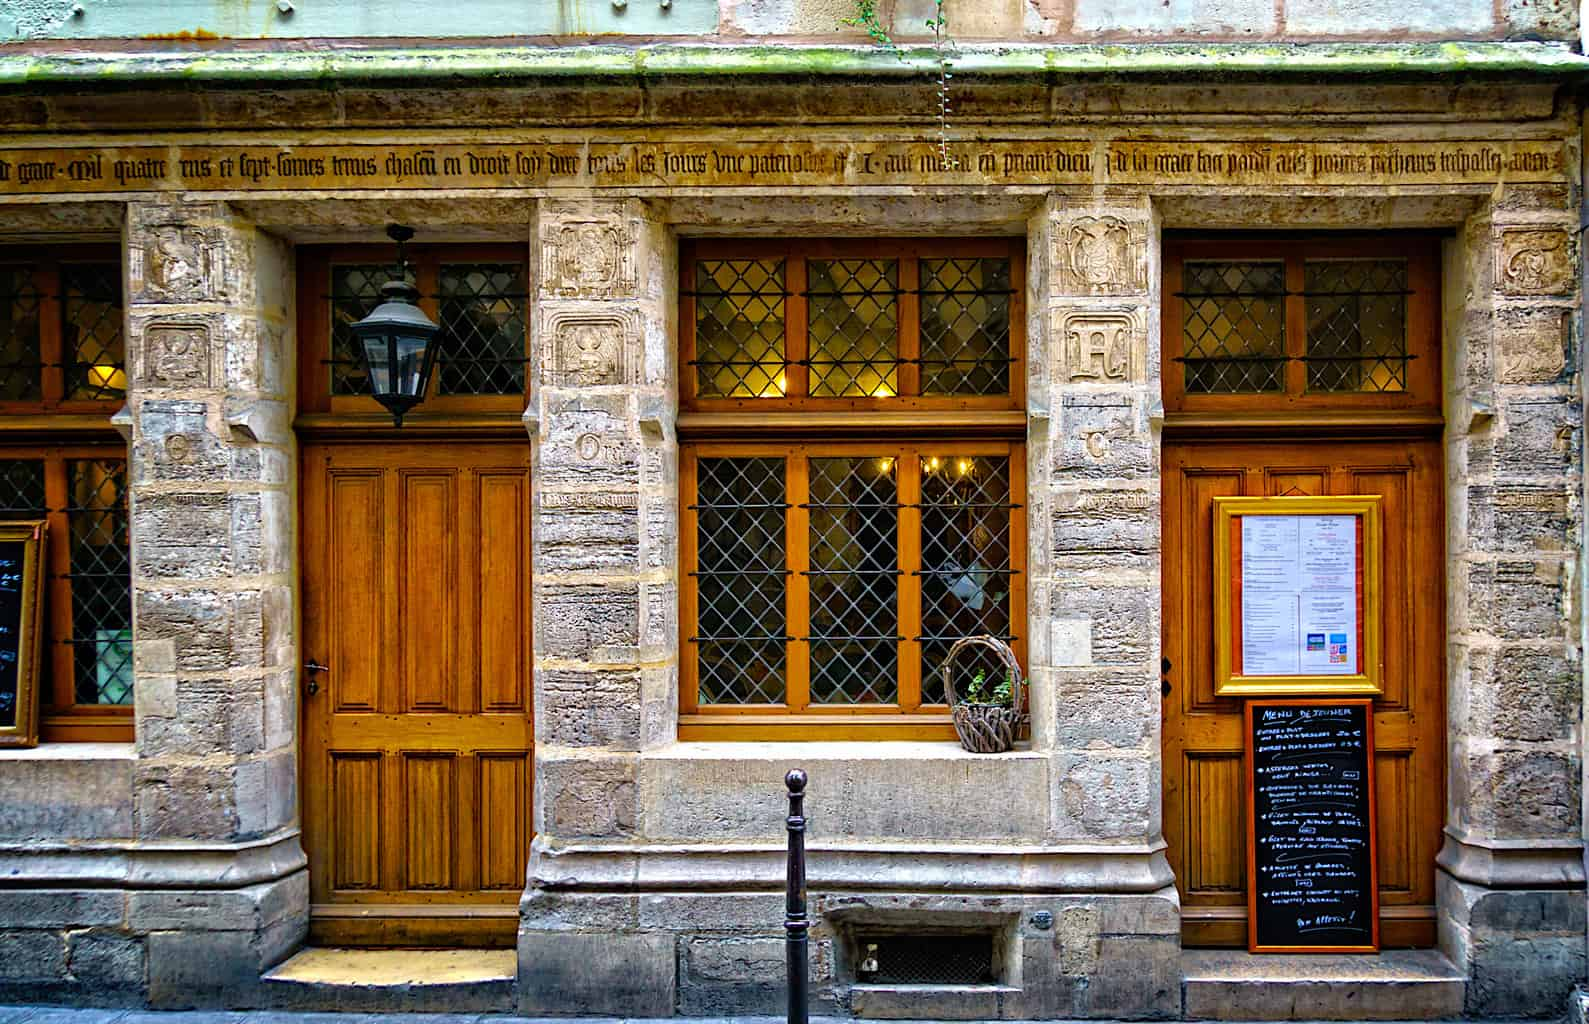 The former home of Nicolas Flamel is now the oldest stone house in Paris.